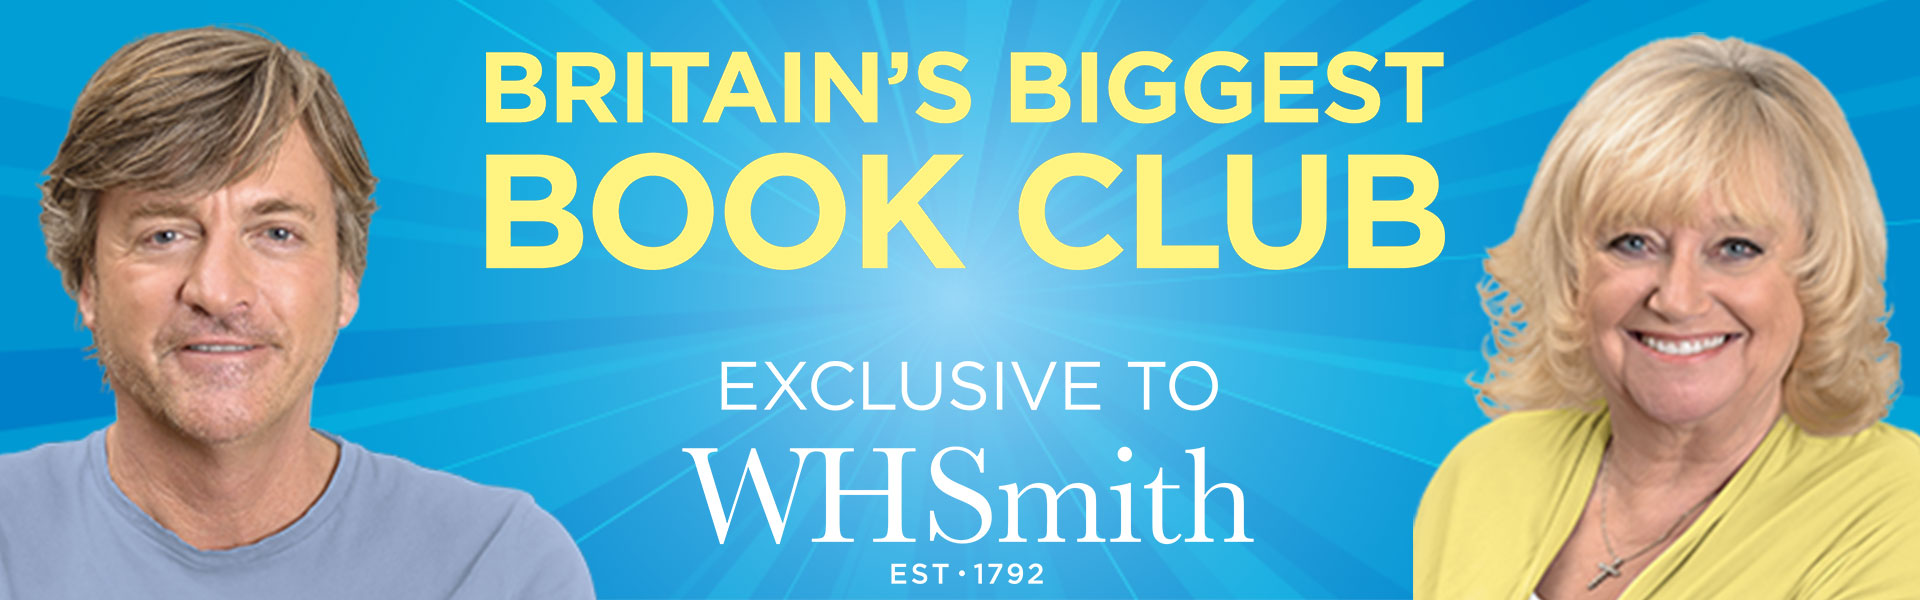 The Richard and Judy Book Club July 2020